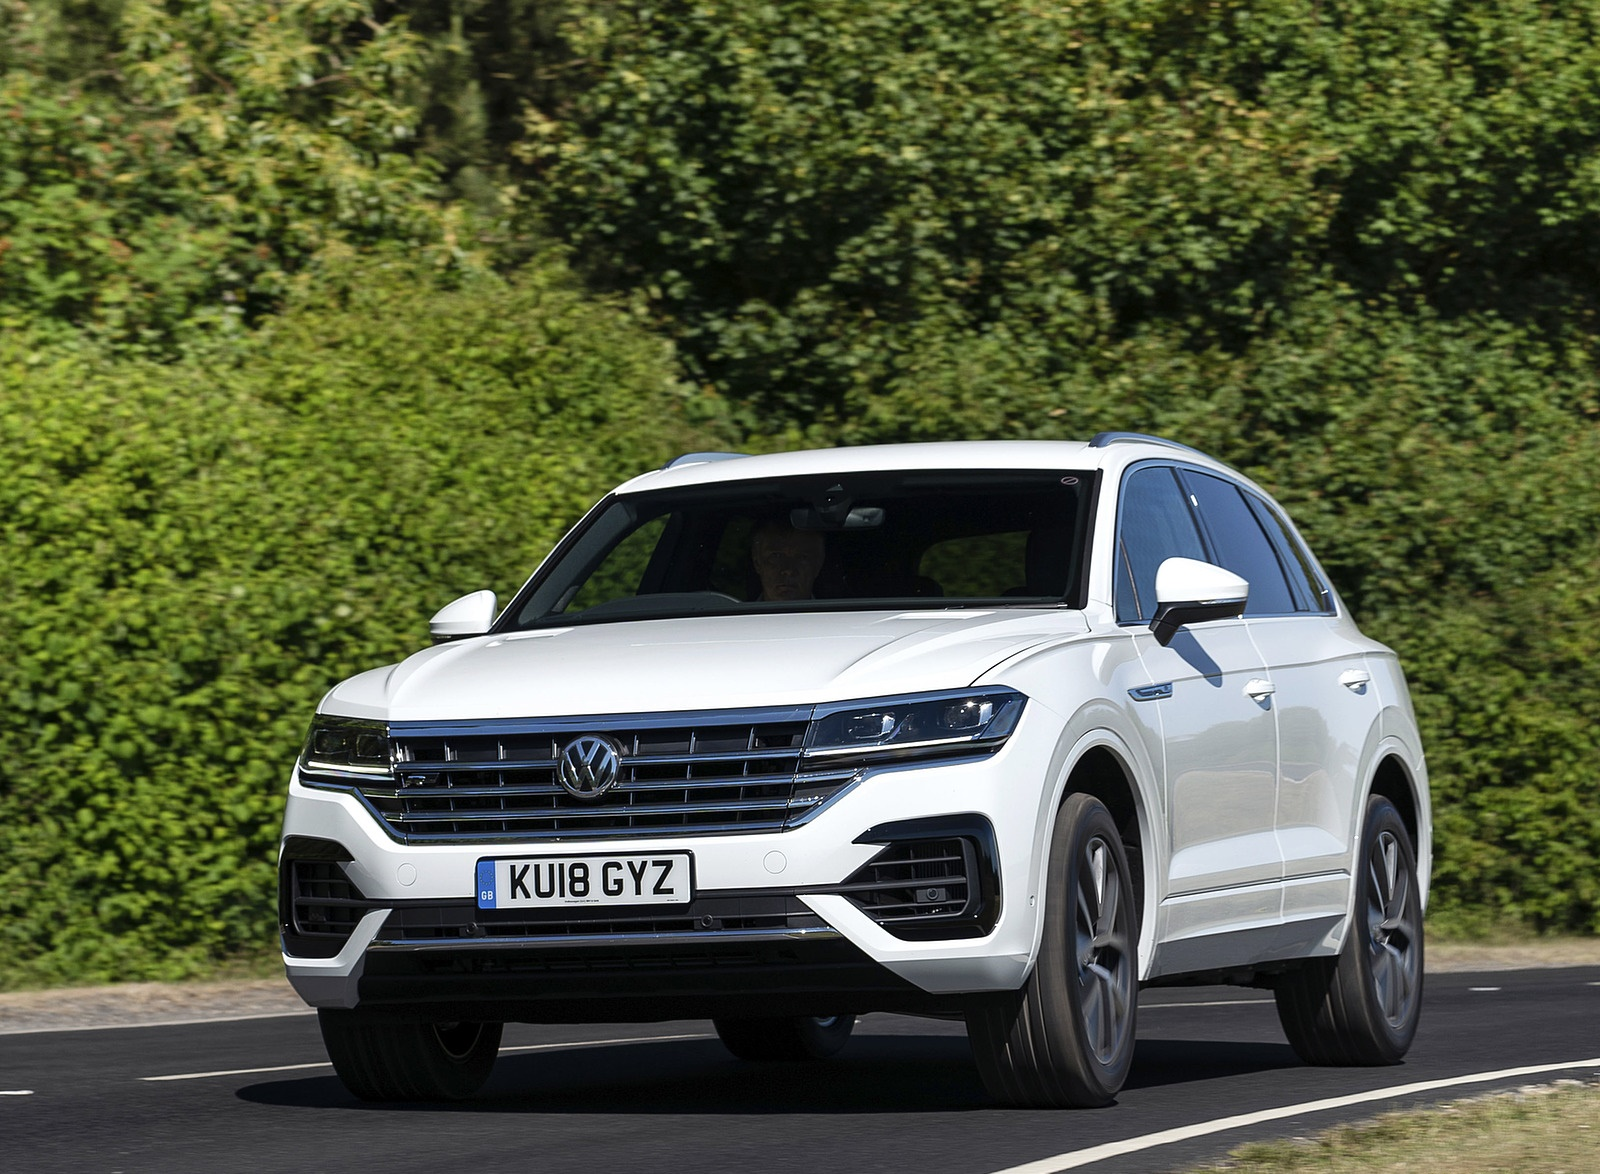 2019 Volkswagen Touareg V6 TDI R-Line (UK-Spec) Front Wallpaper #9 of 43